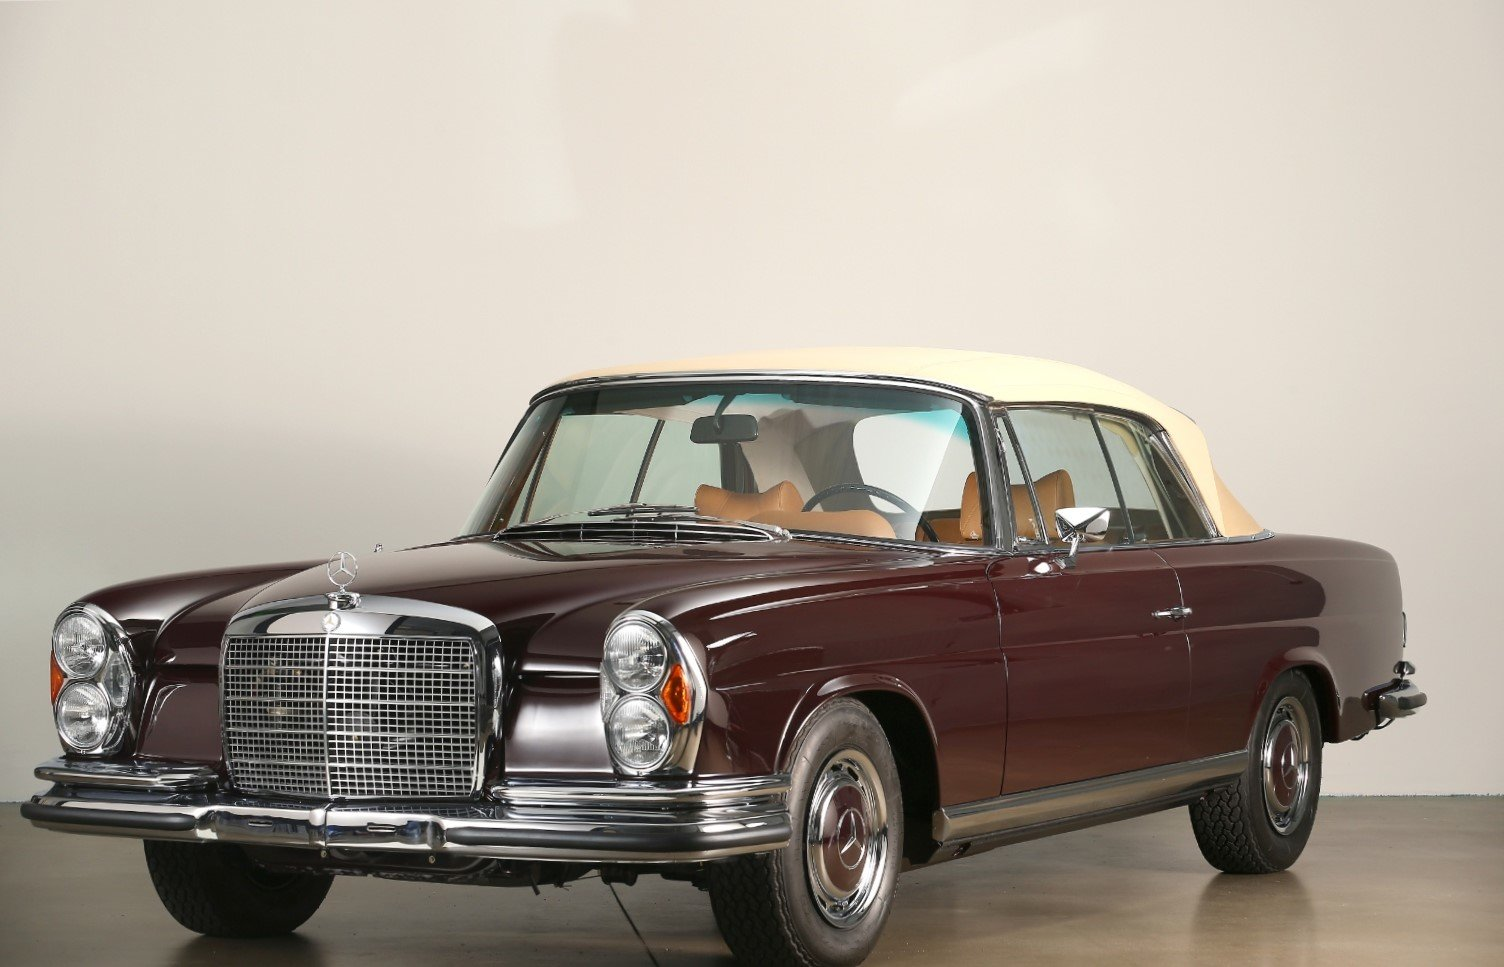 1970 280 SE W111 Concourse Restored - Collector's item For Sale (picture 4 of 6)